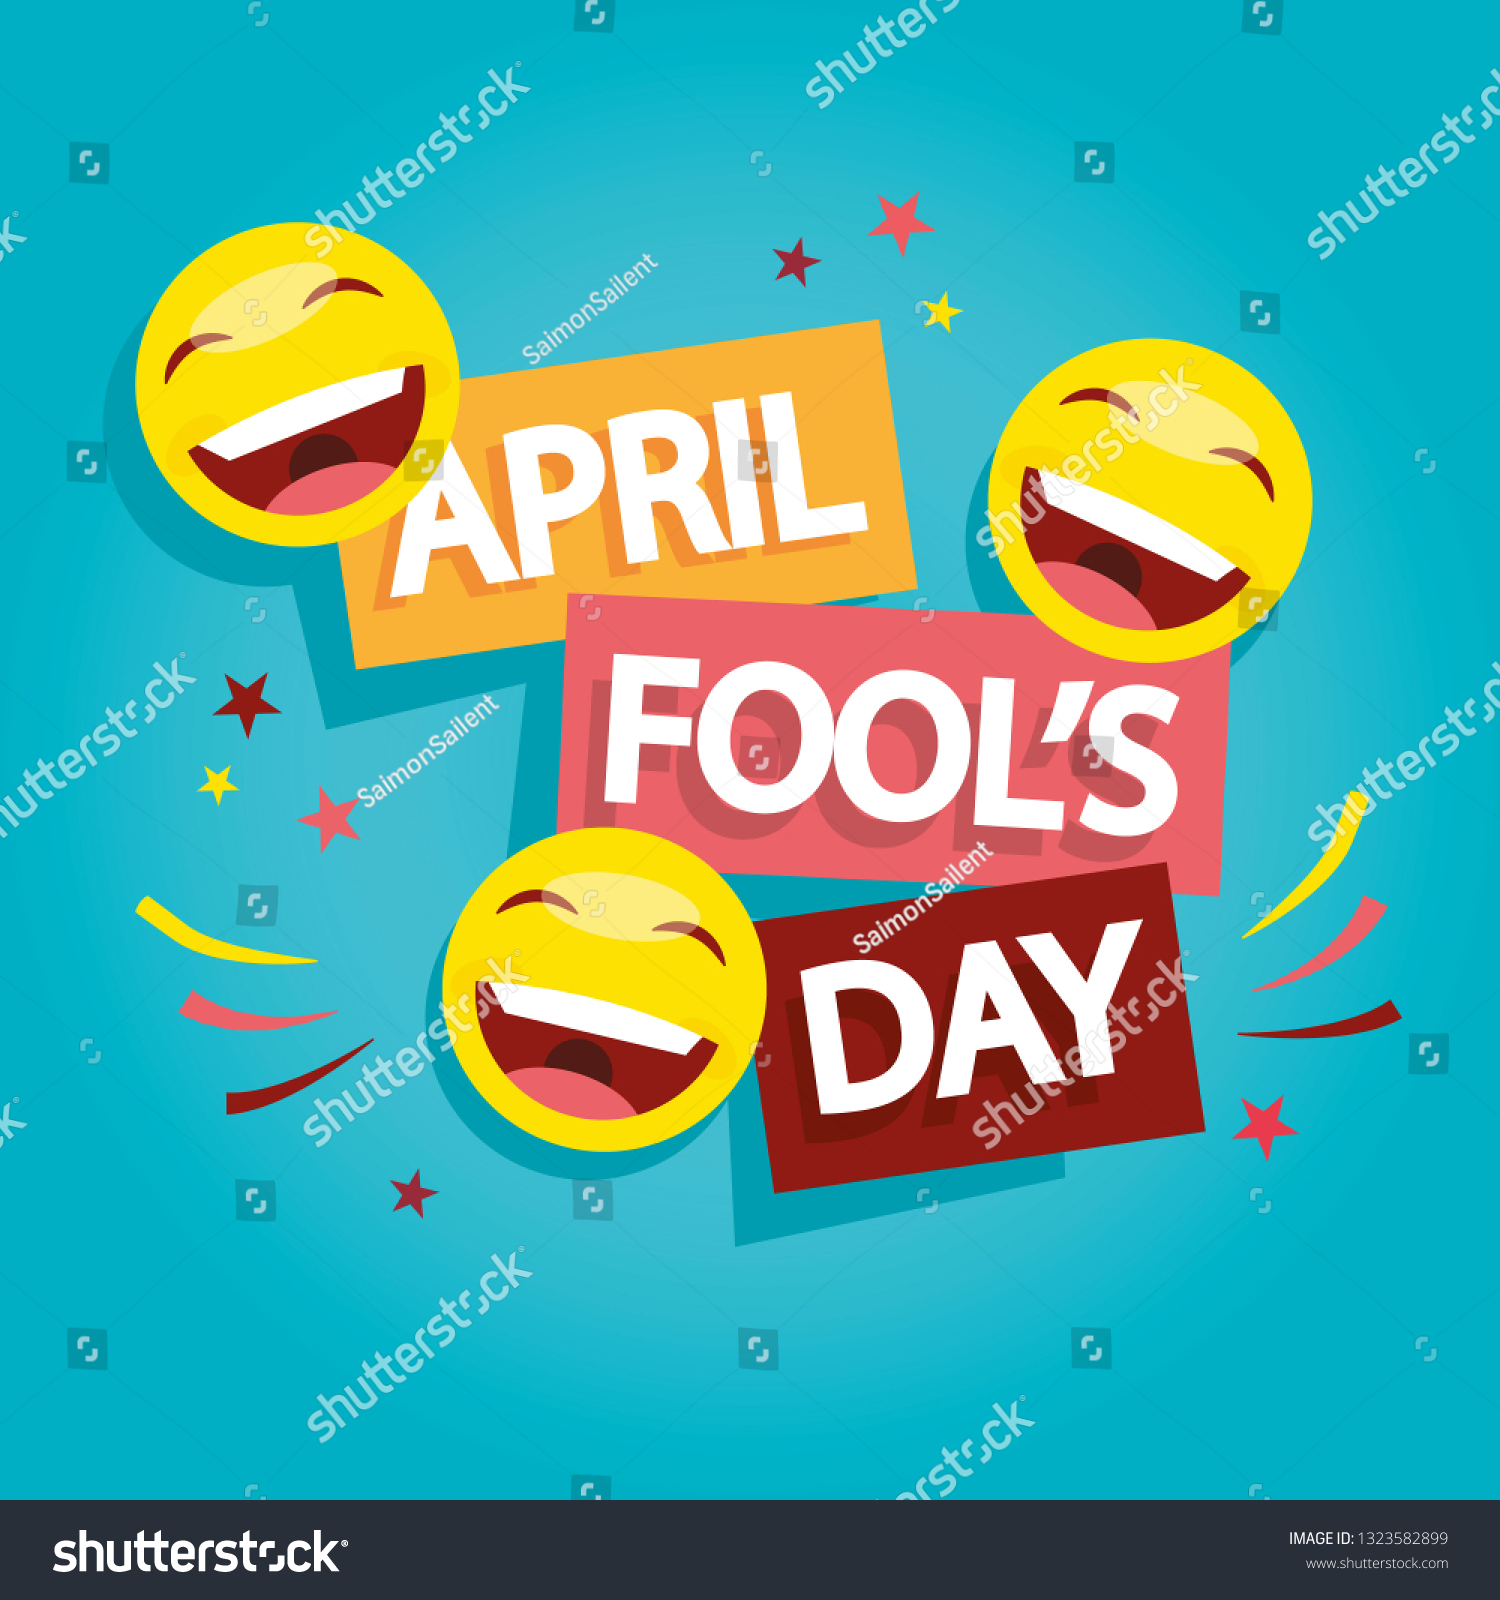 Modern vector illustration of Fool's Day. 1 april Day illustration.